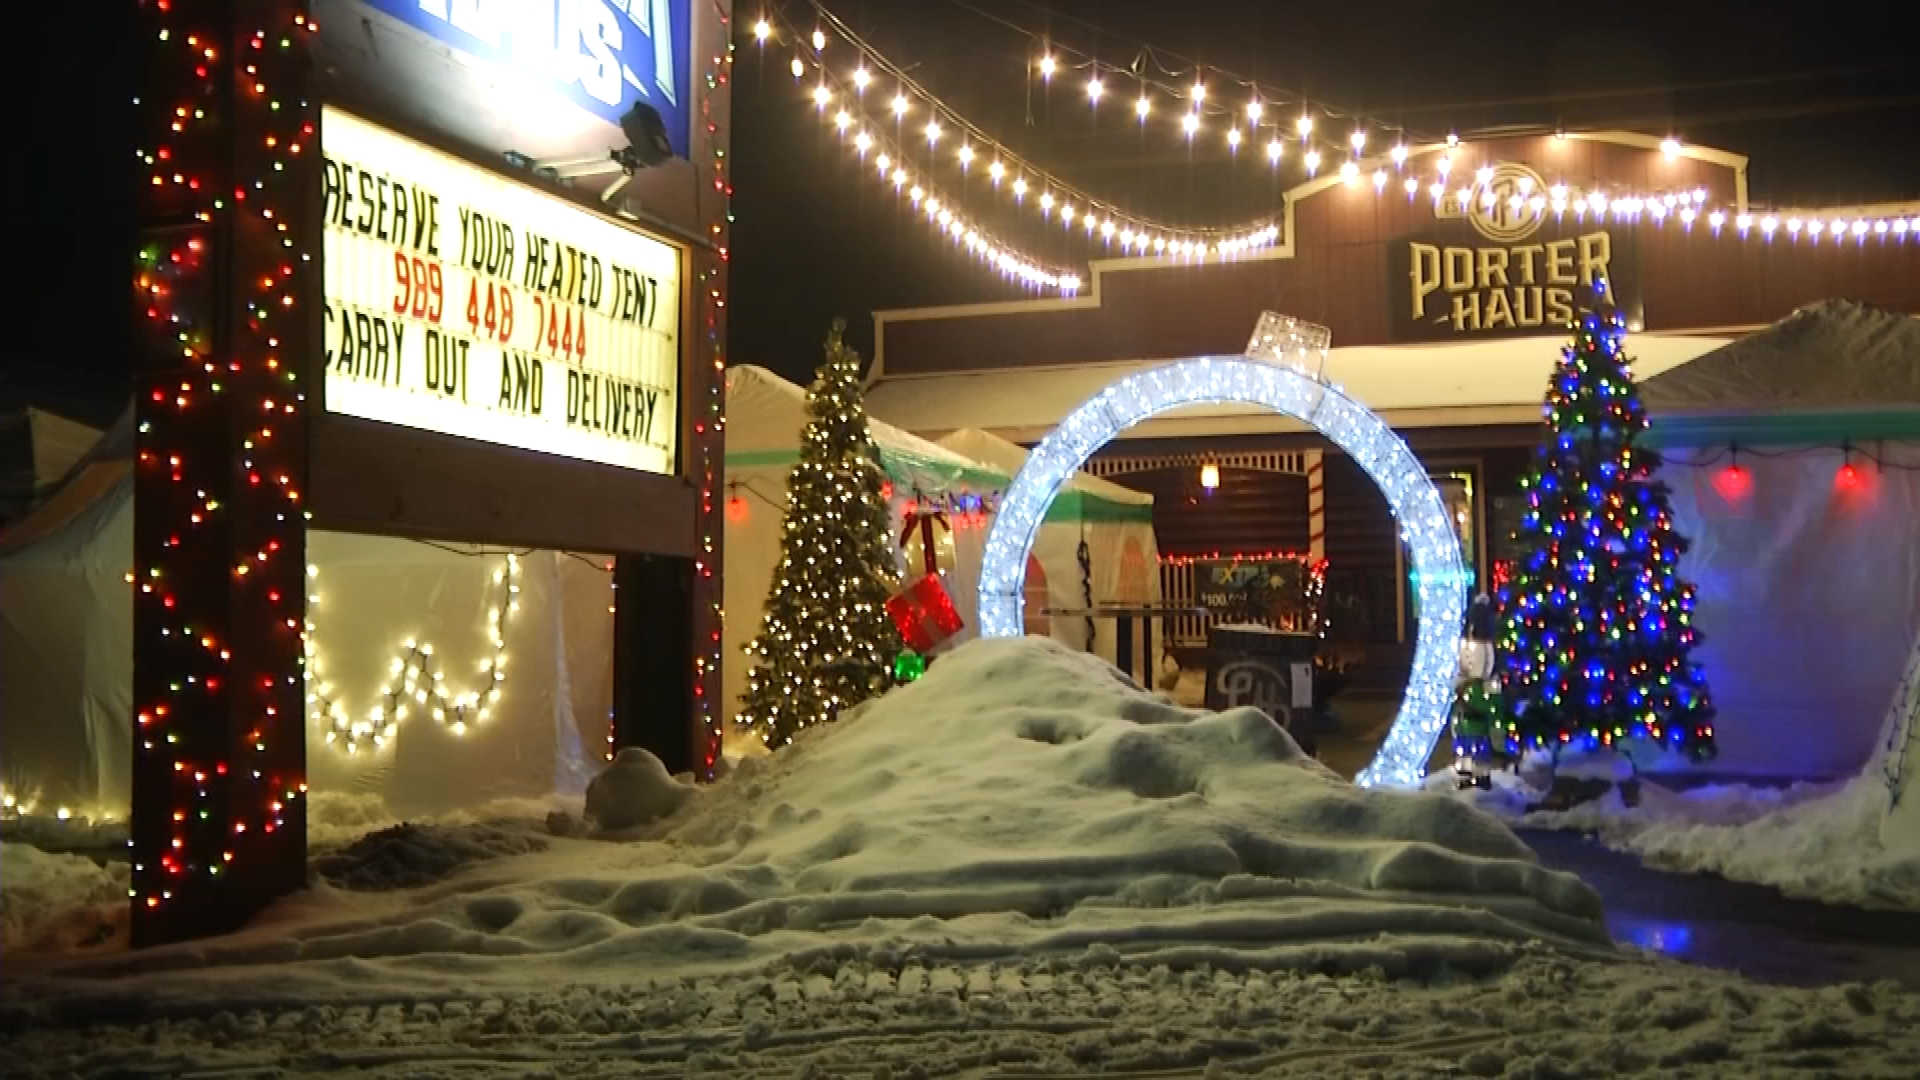 Gaylord S Porter Haus Restaurant Brings Christmas Spirit To Customers Employees With Outdoor Seating 9 10 News